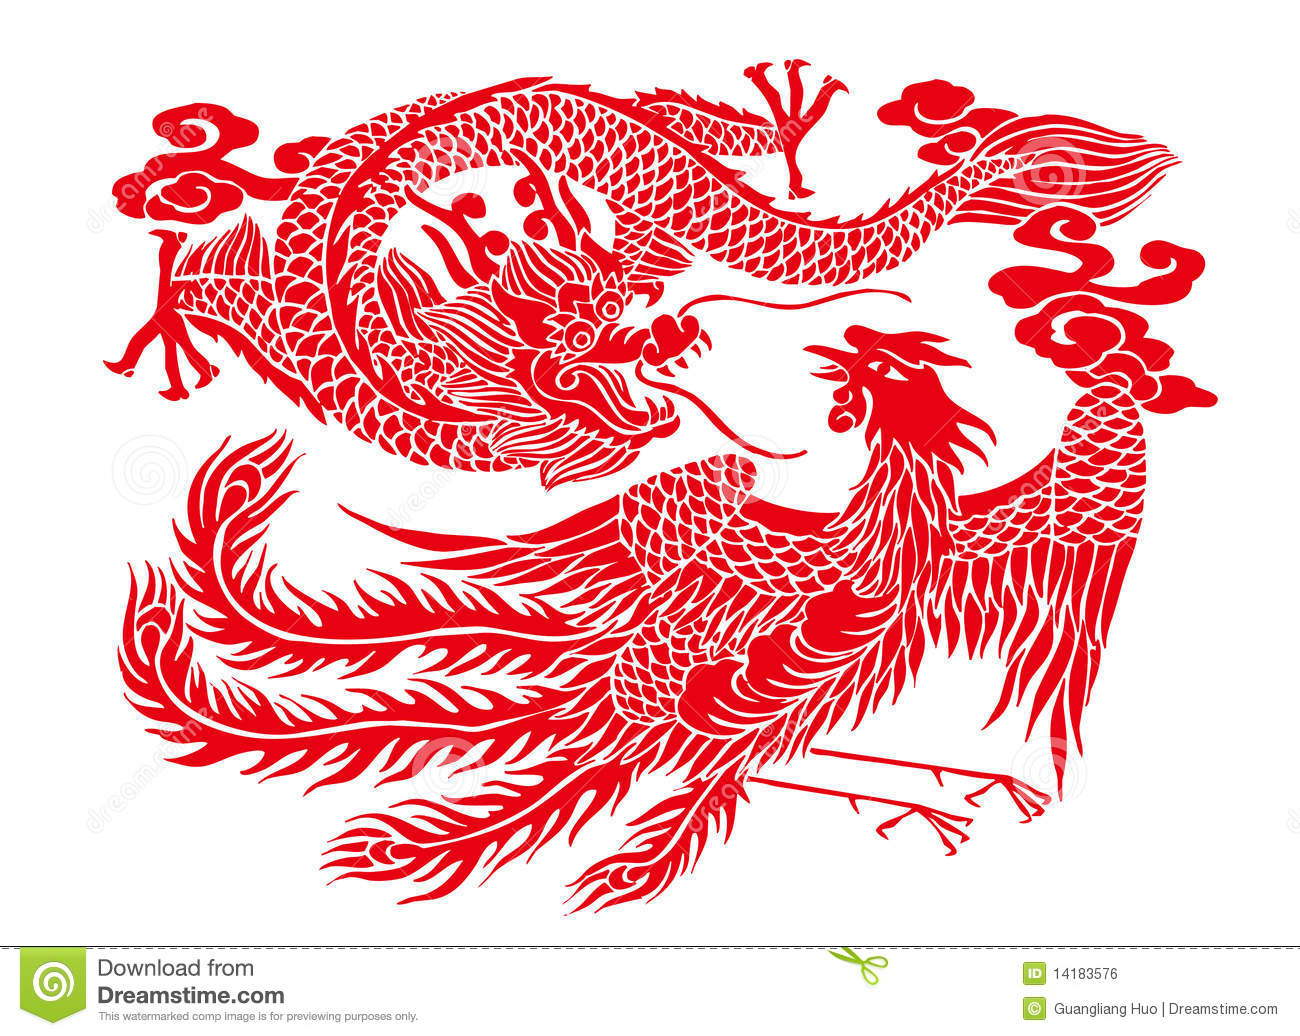 Chinese paper cutting stock illustration image of crafts for Chinese paper cutting templates dragon